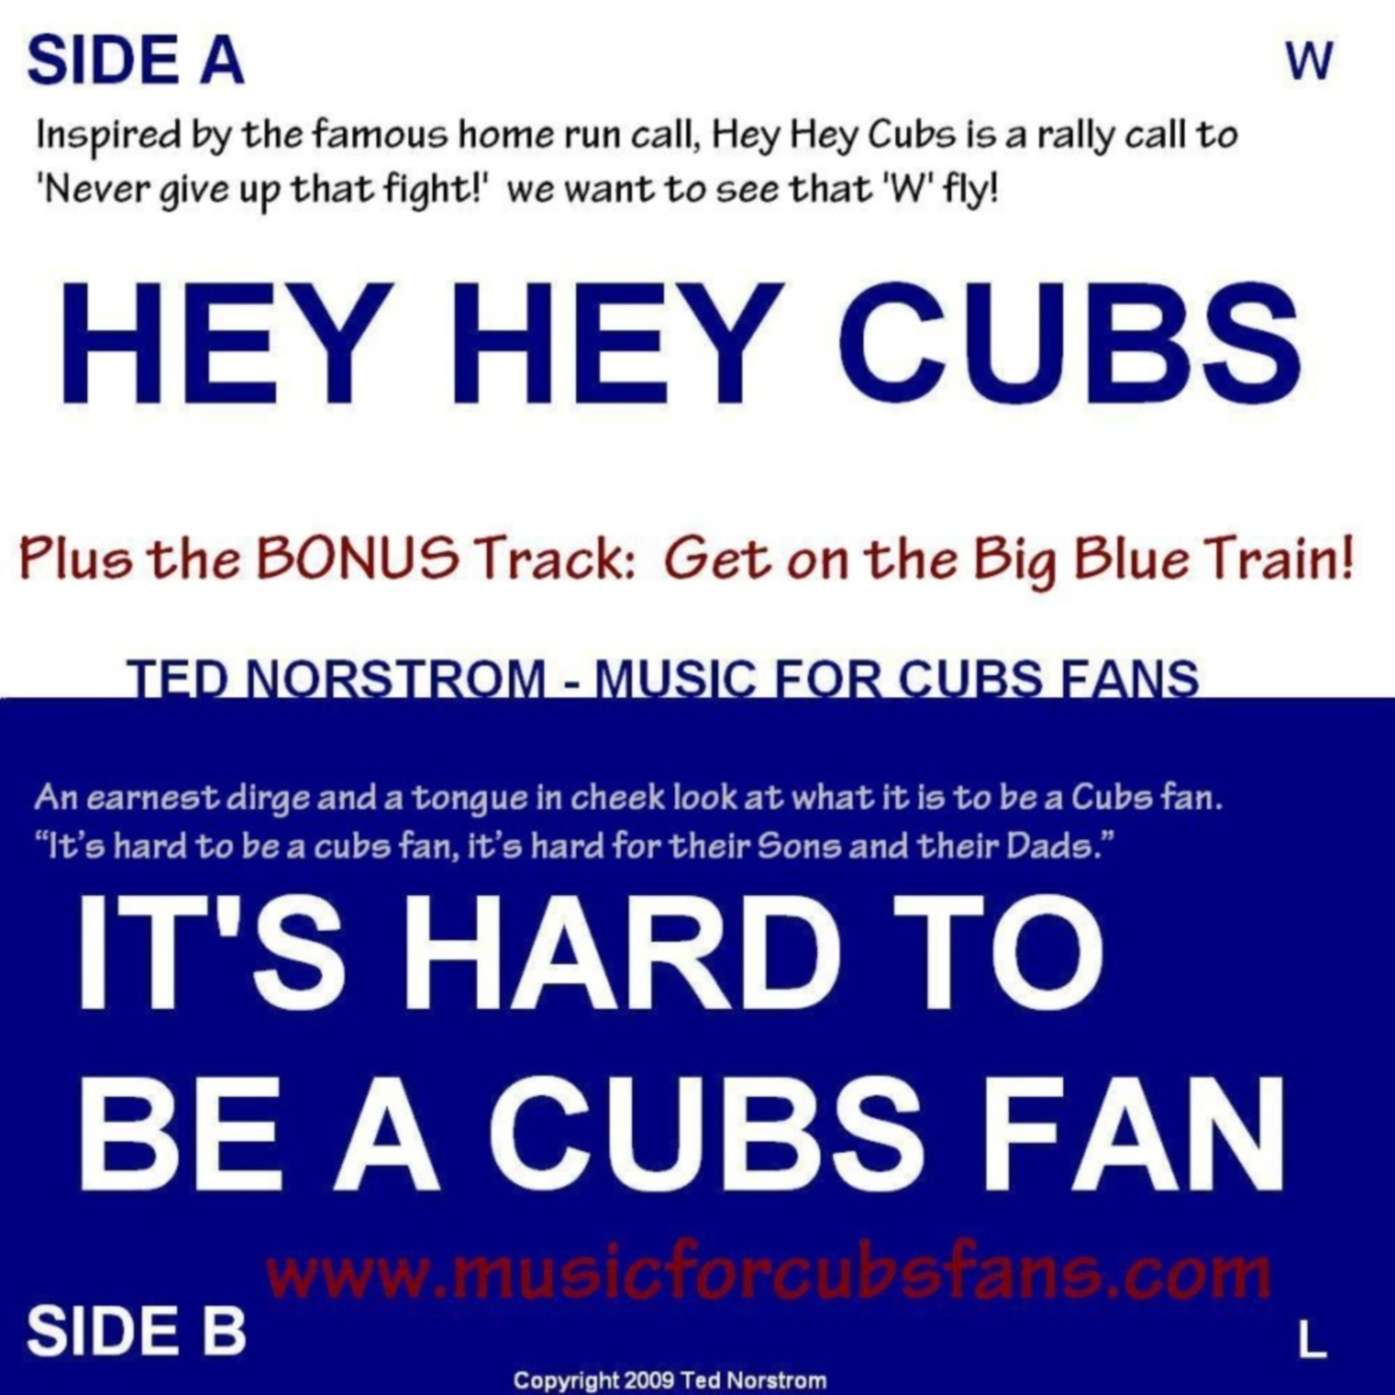 Hey Hey Cubs - It's Hard to be a Cubs Fan